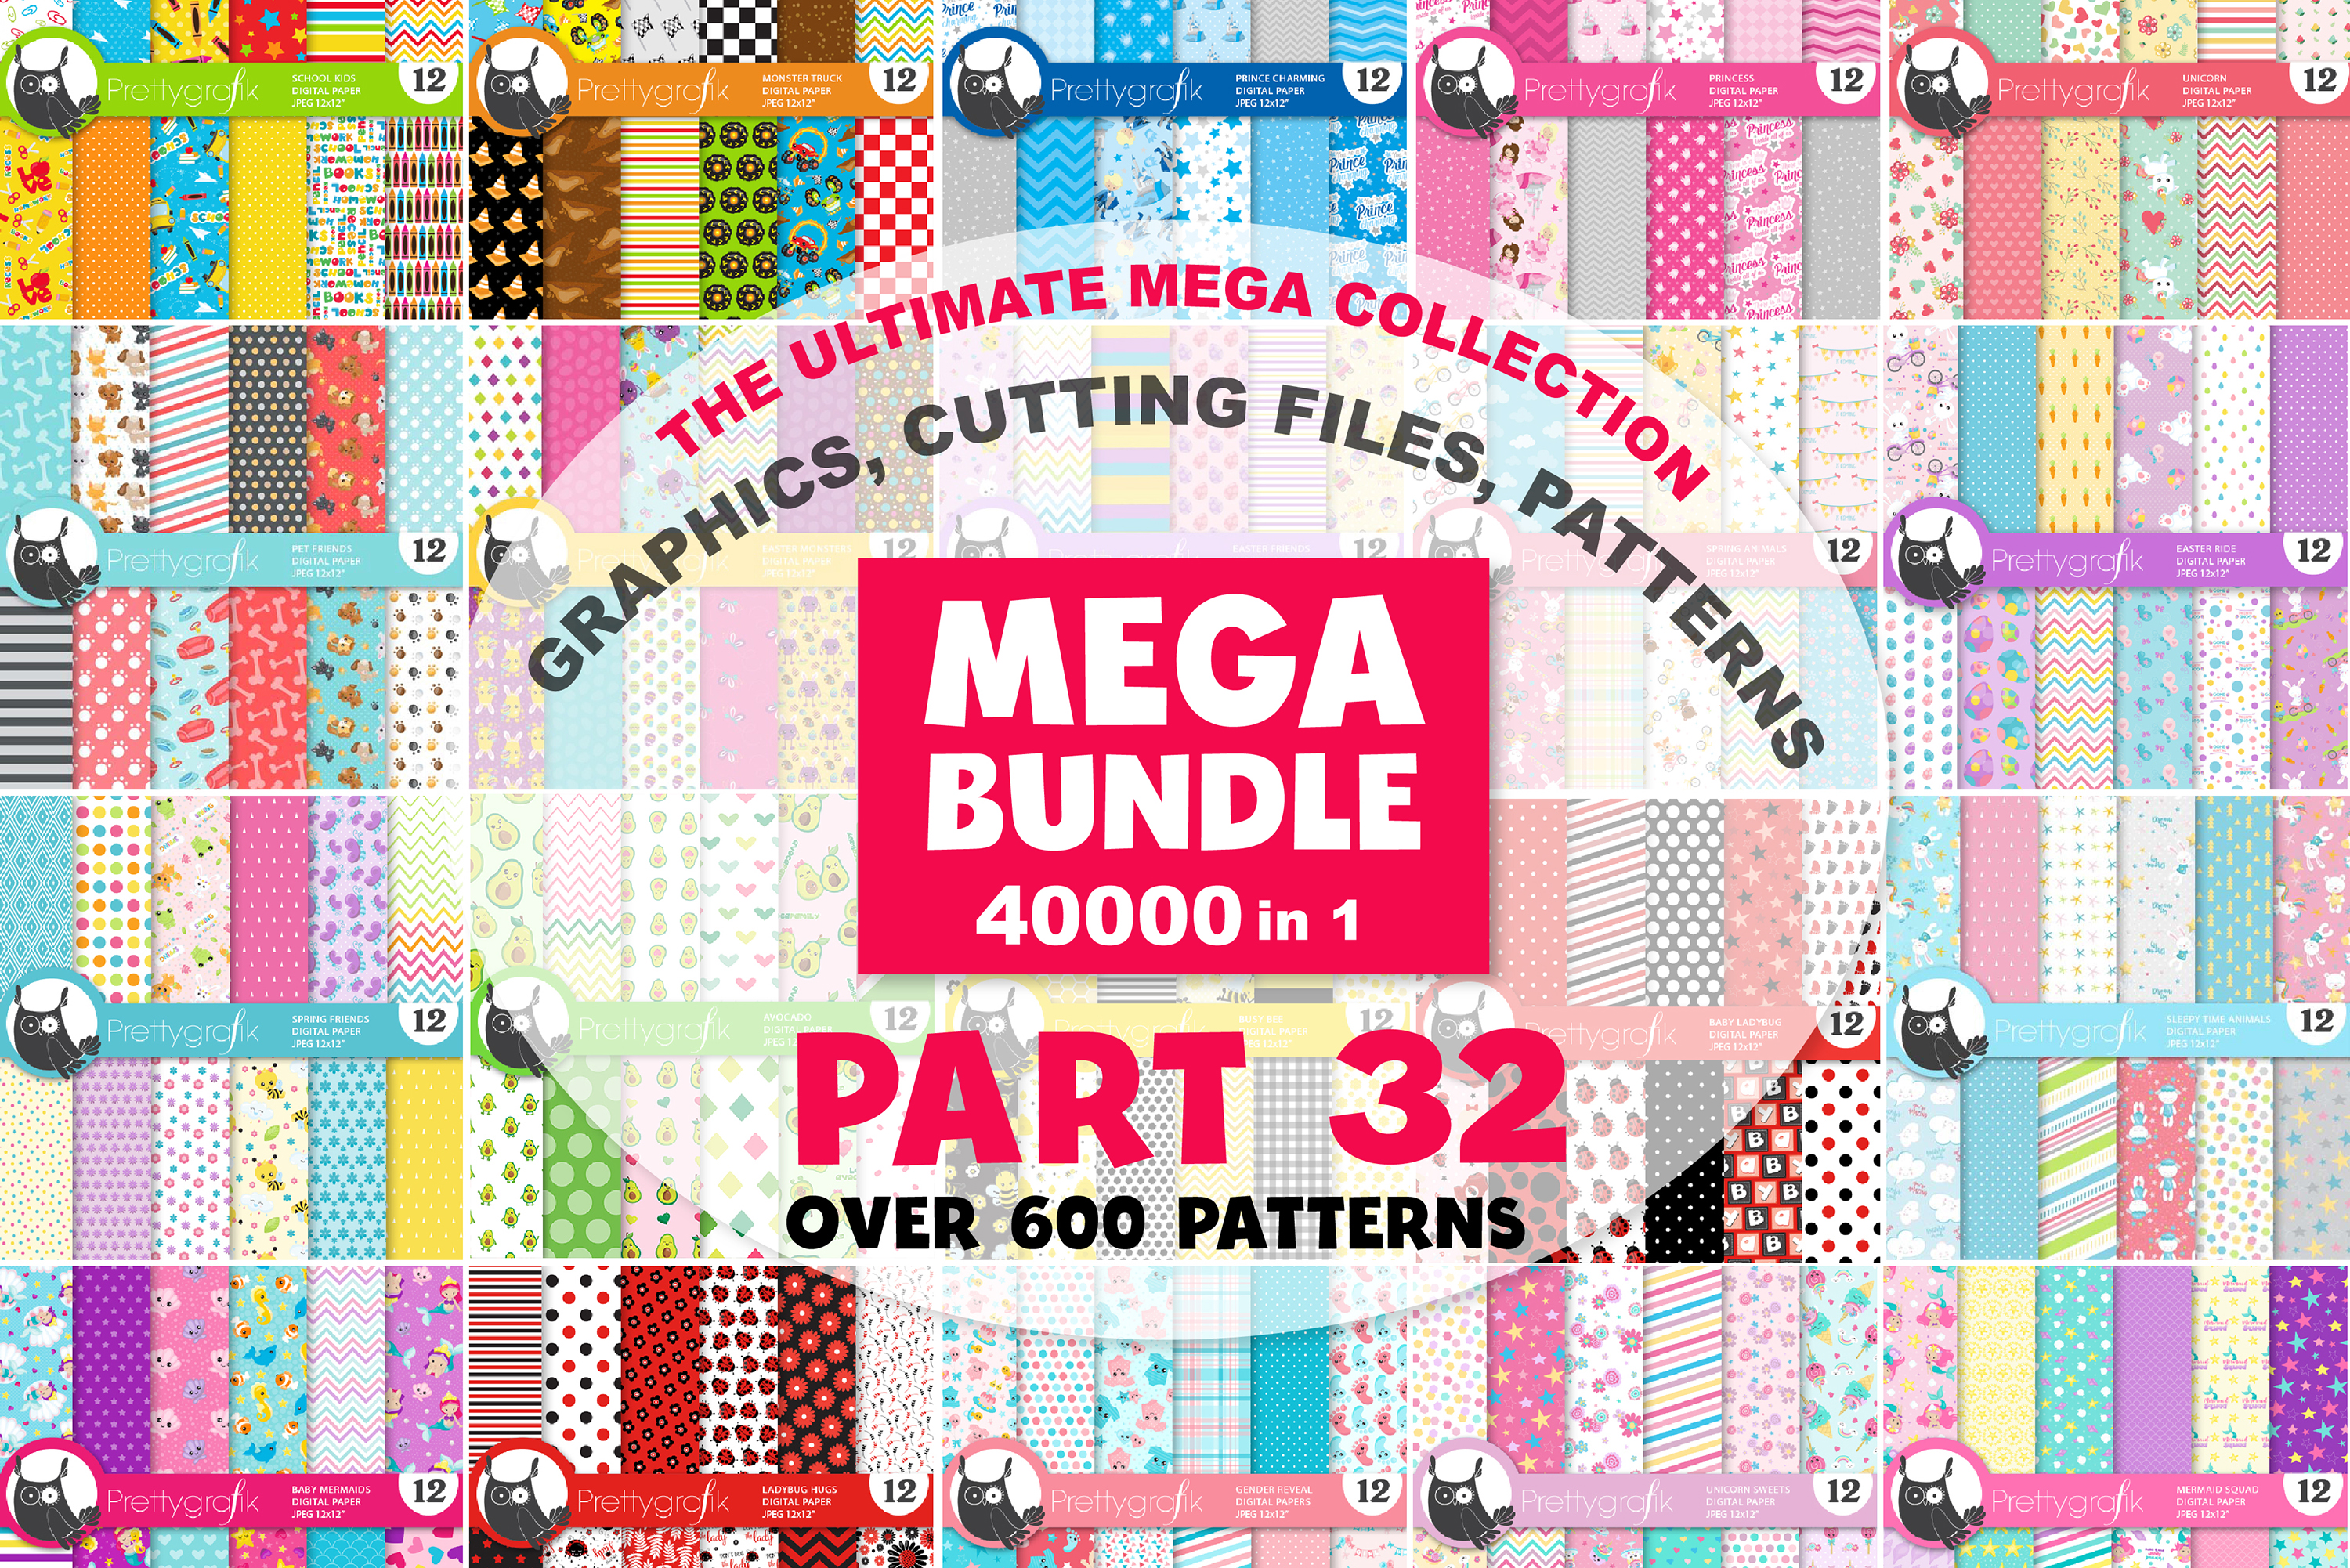 MEGA BUNDLE PART32 - 40000 in 1 Full Collection example image 1